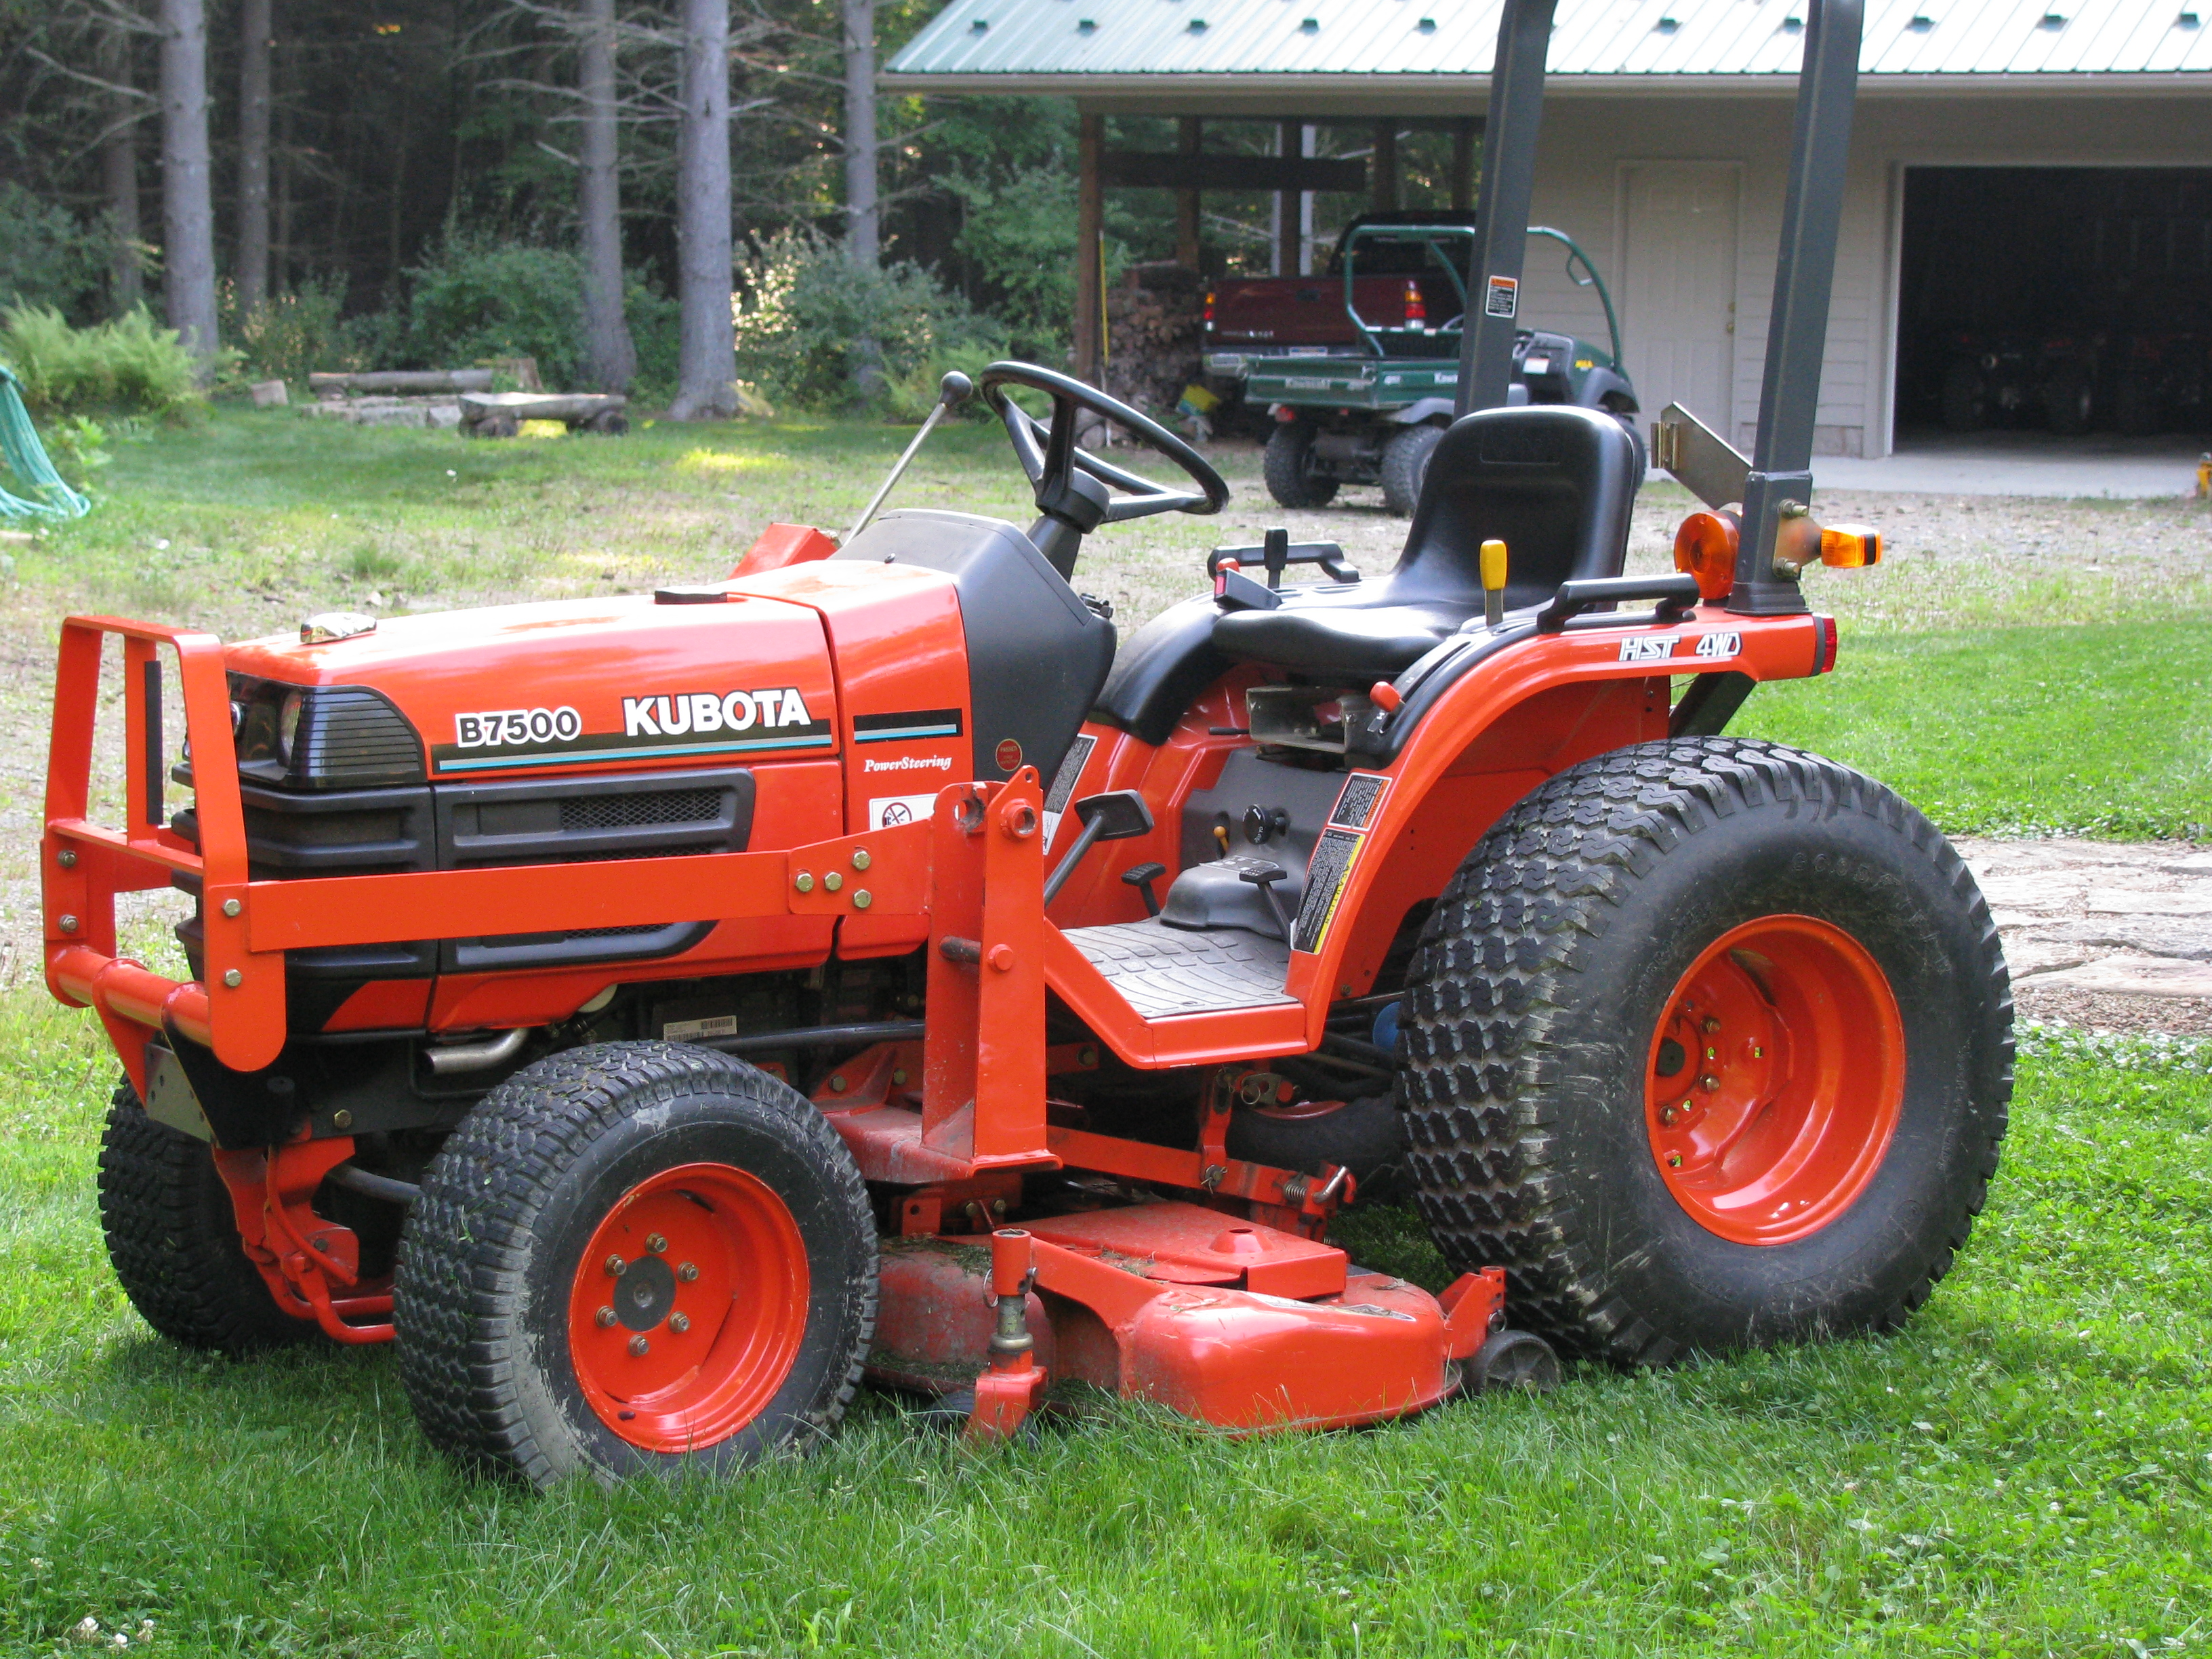 Kubota Manual Kubota B7500hsd Tractor Master Parts Manual